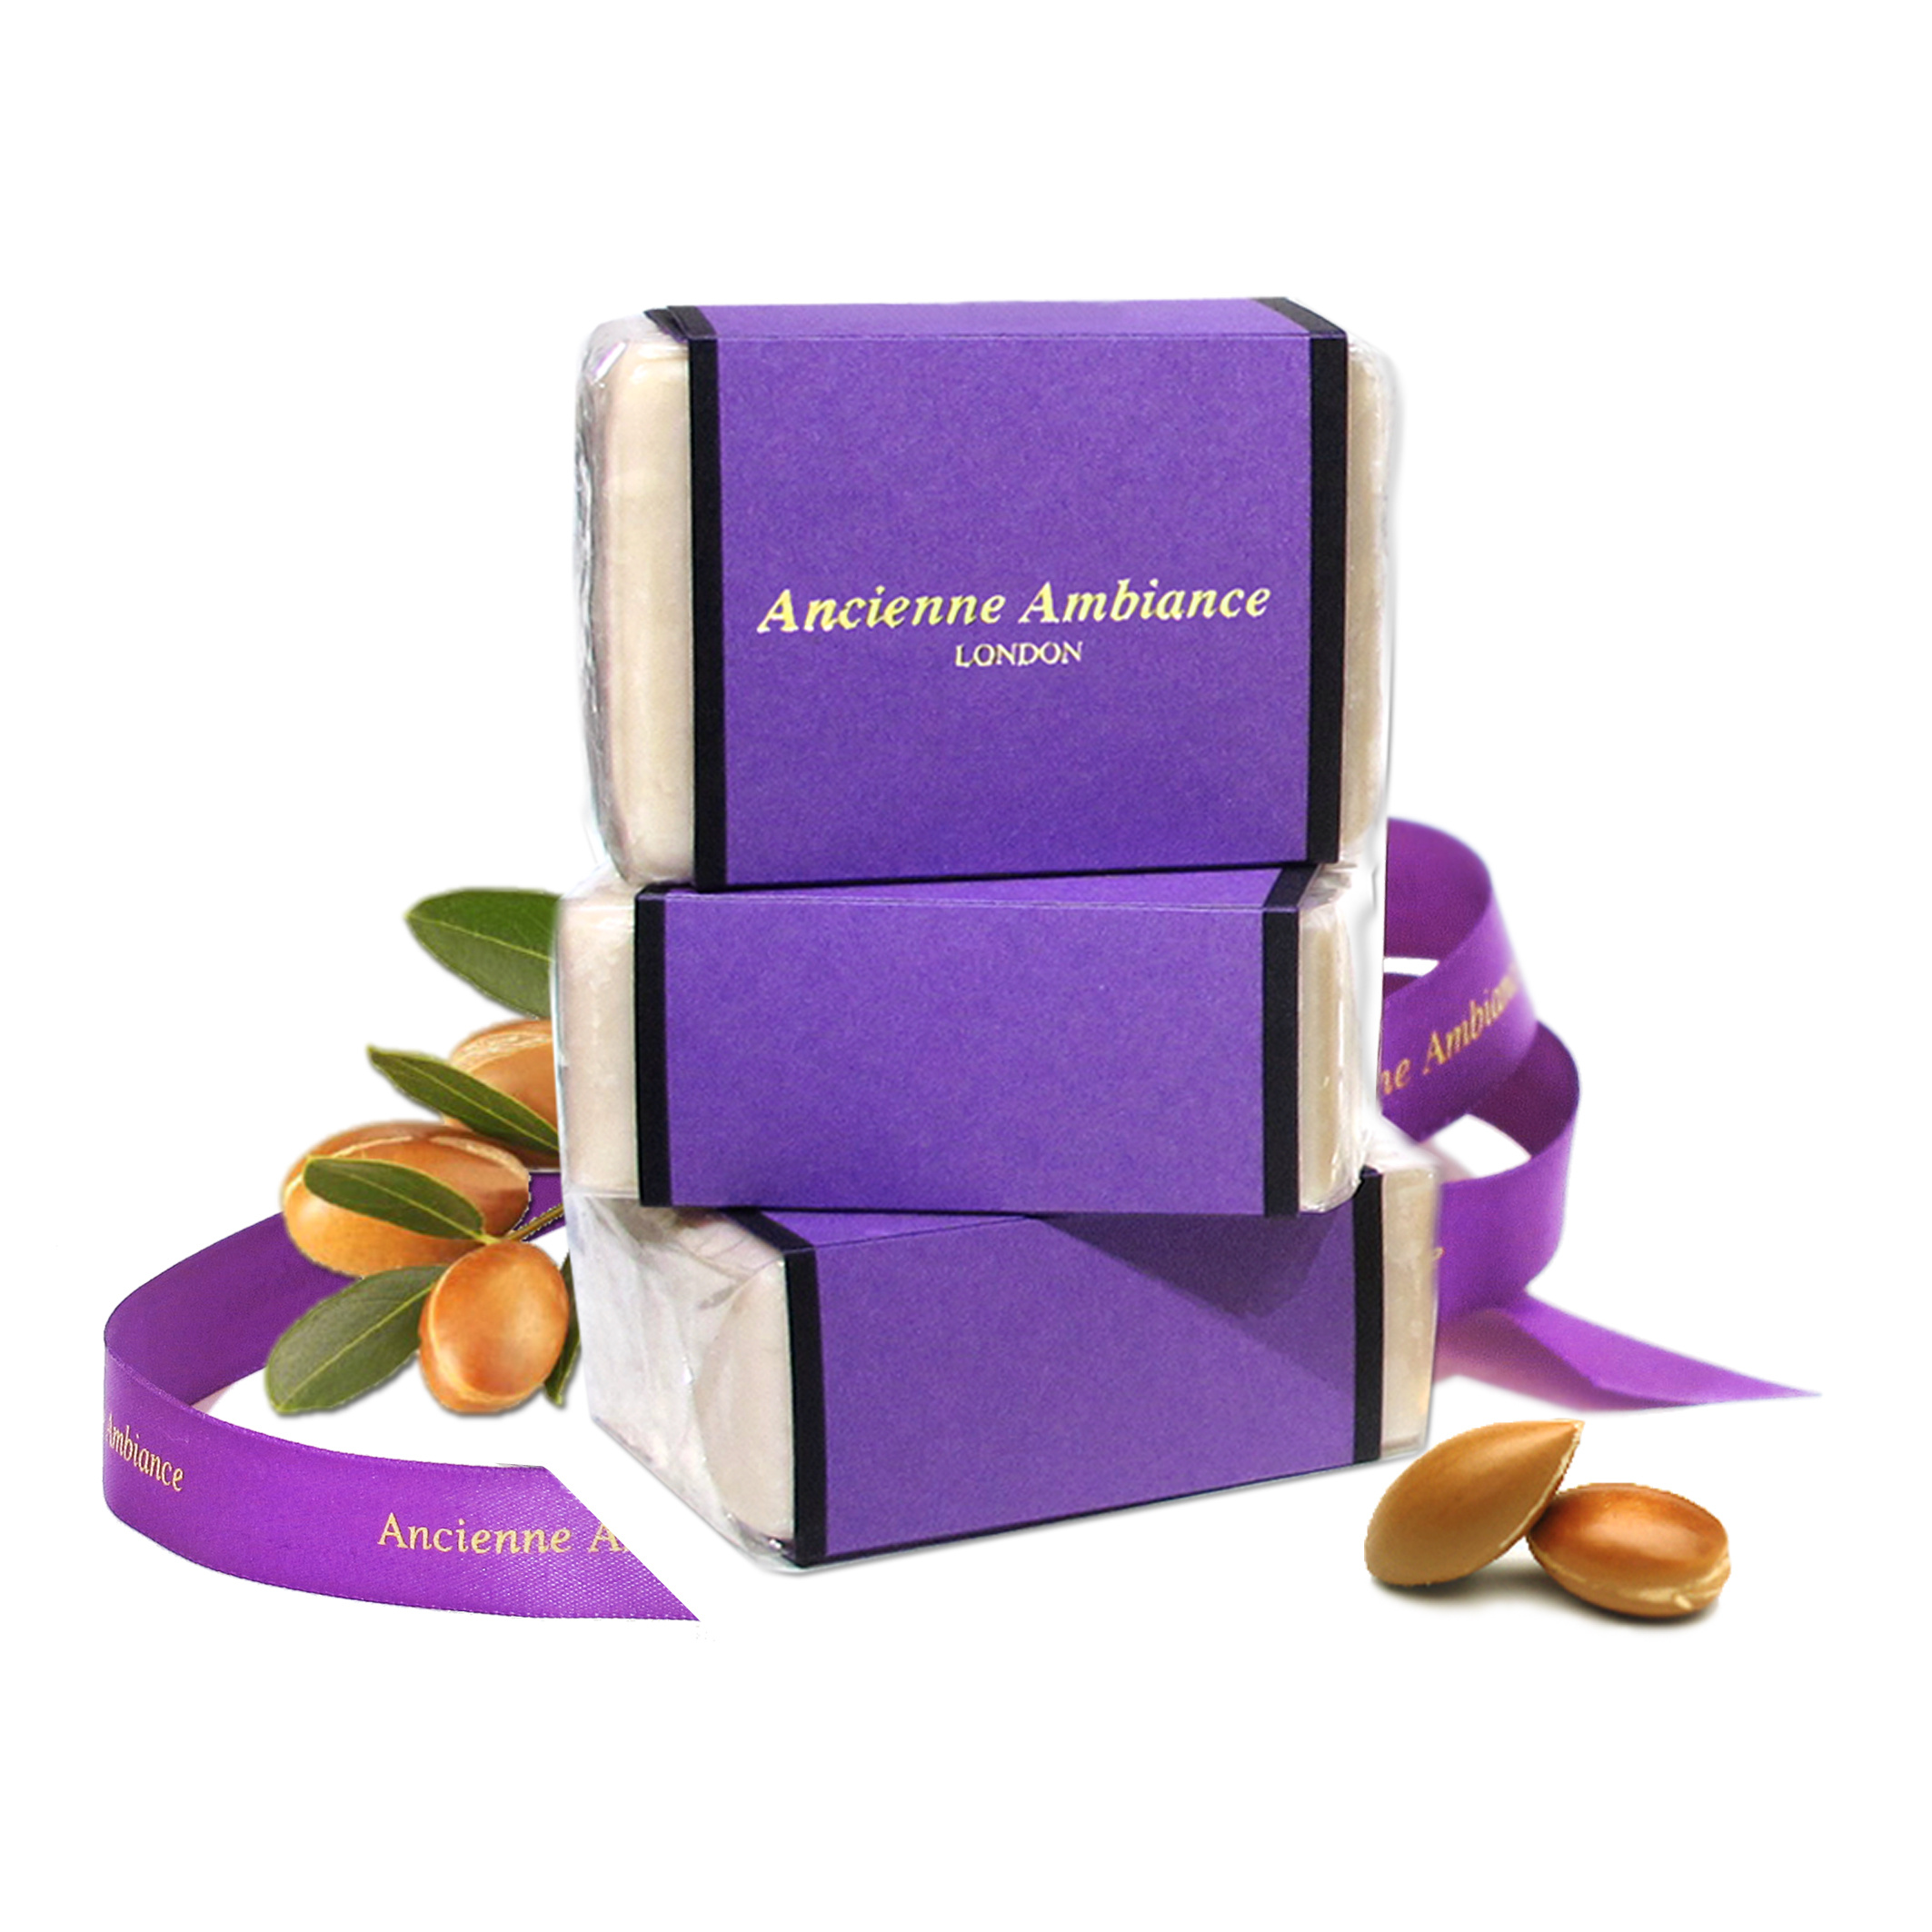 Ancienne Ambiance Introduces Luxurious New Goddess Soaps